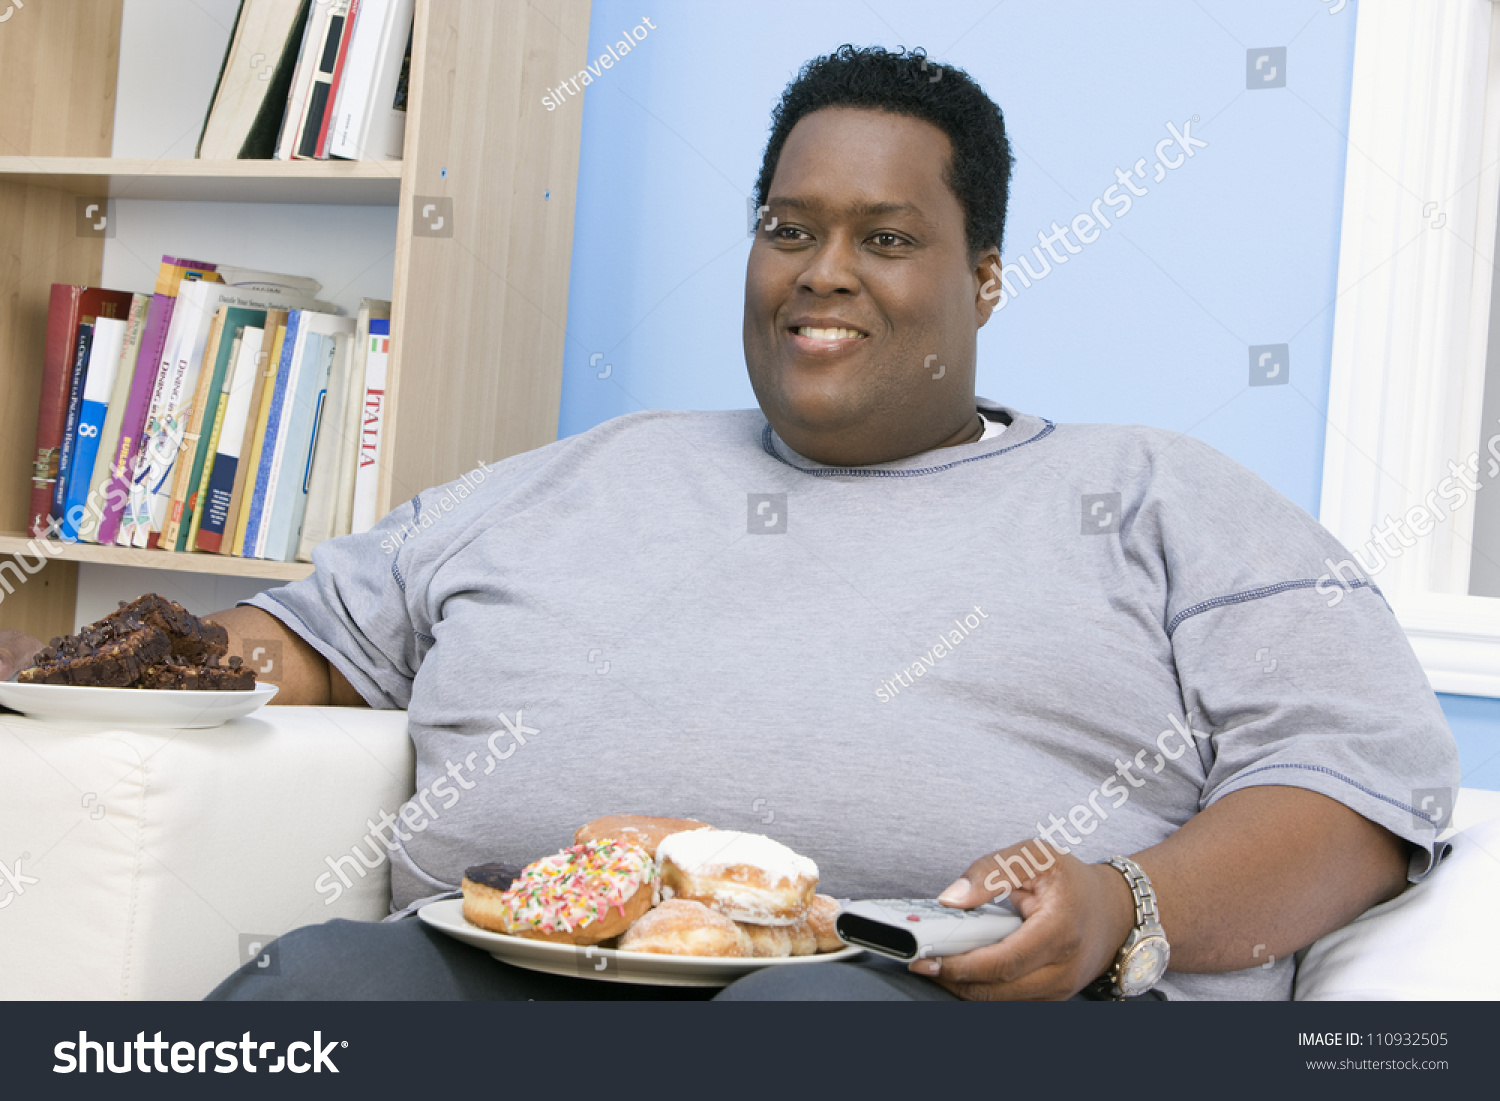 stock-photo-african-american-man-eating-donut-while-watching-television-110932505.jpg